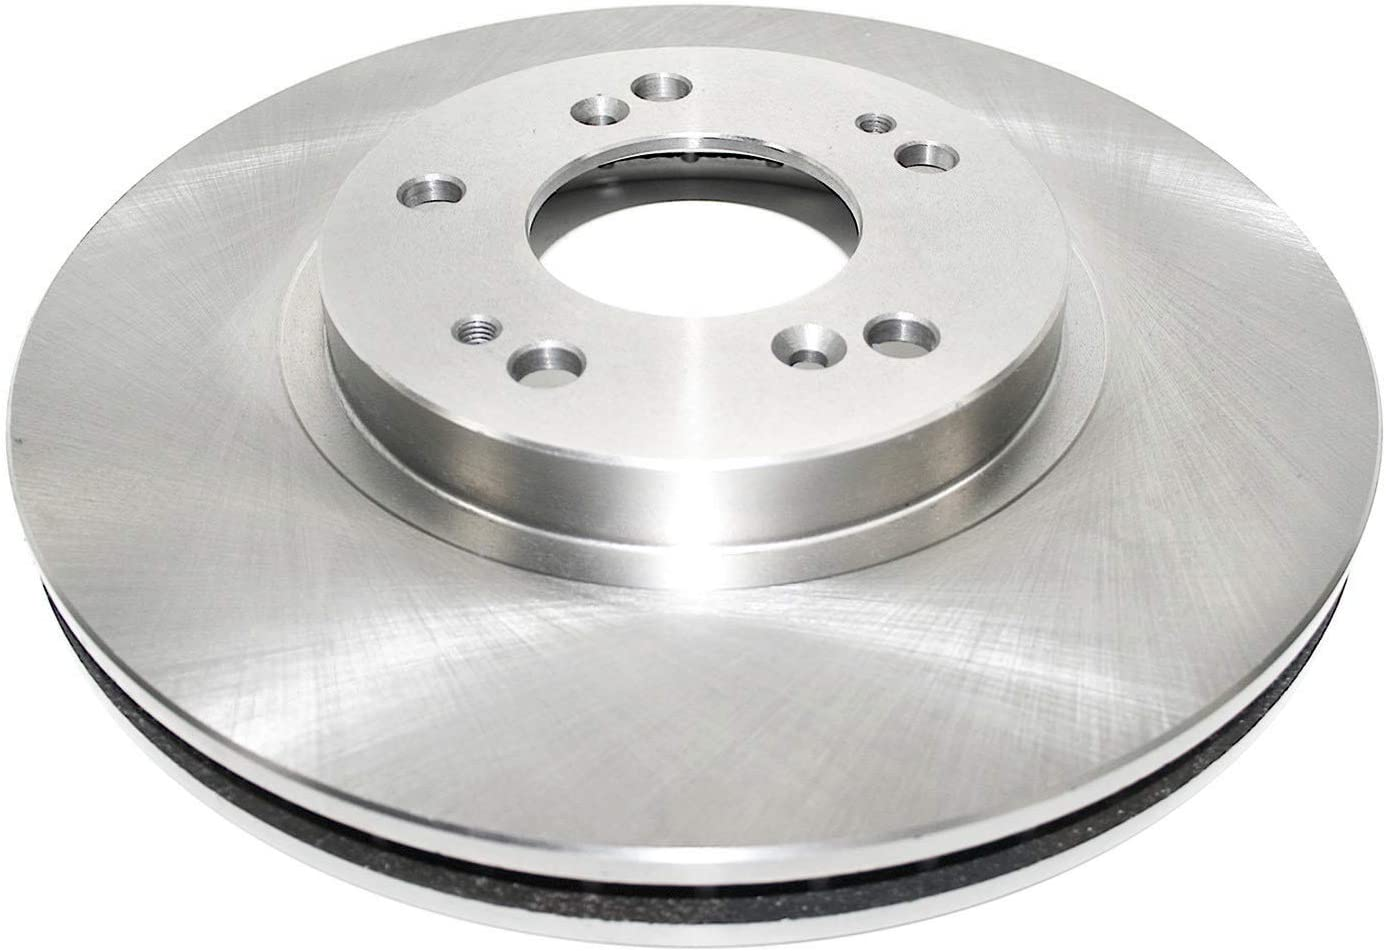 shipfree DuraGo BR31343 Front Vented Disc Rotor Brake Milwaukee Mall